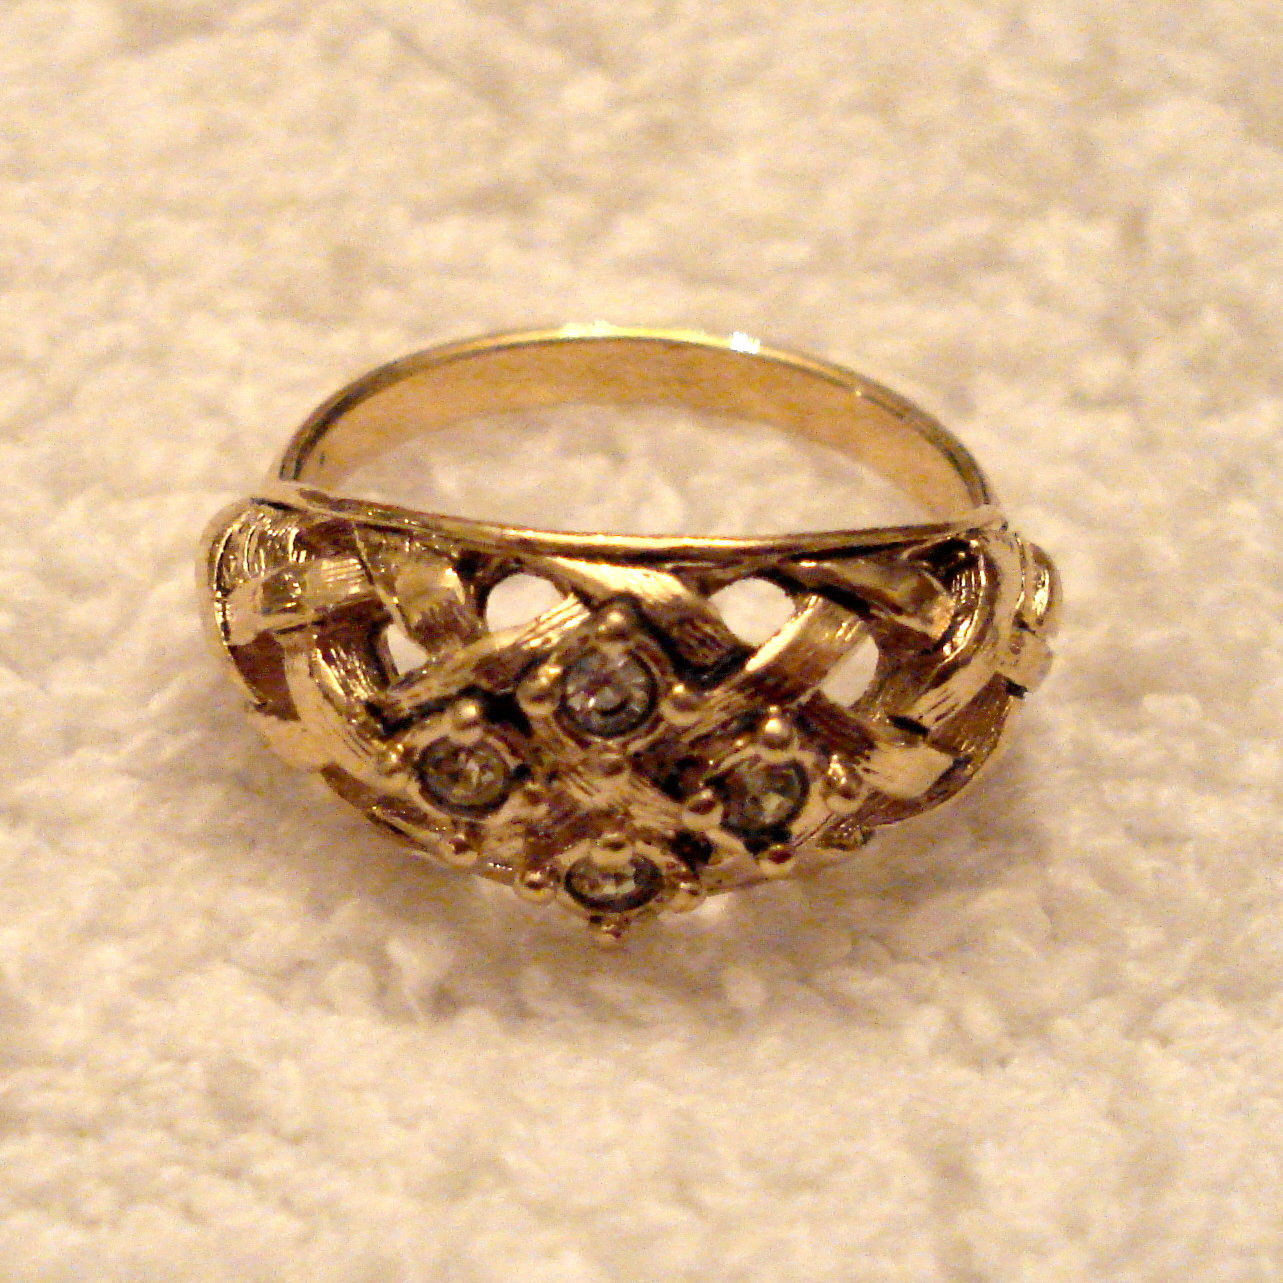 NICE BASKET WEAVE RING with RHINESTONES Antiqued Gold Tone approx size 8 EUC - $19.75